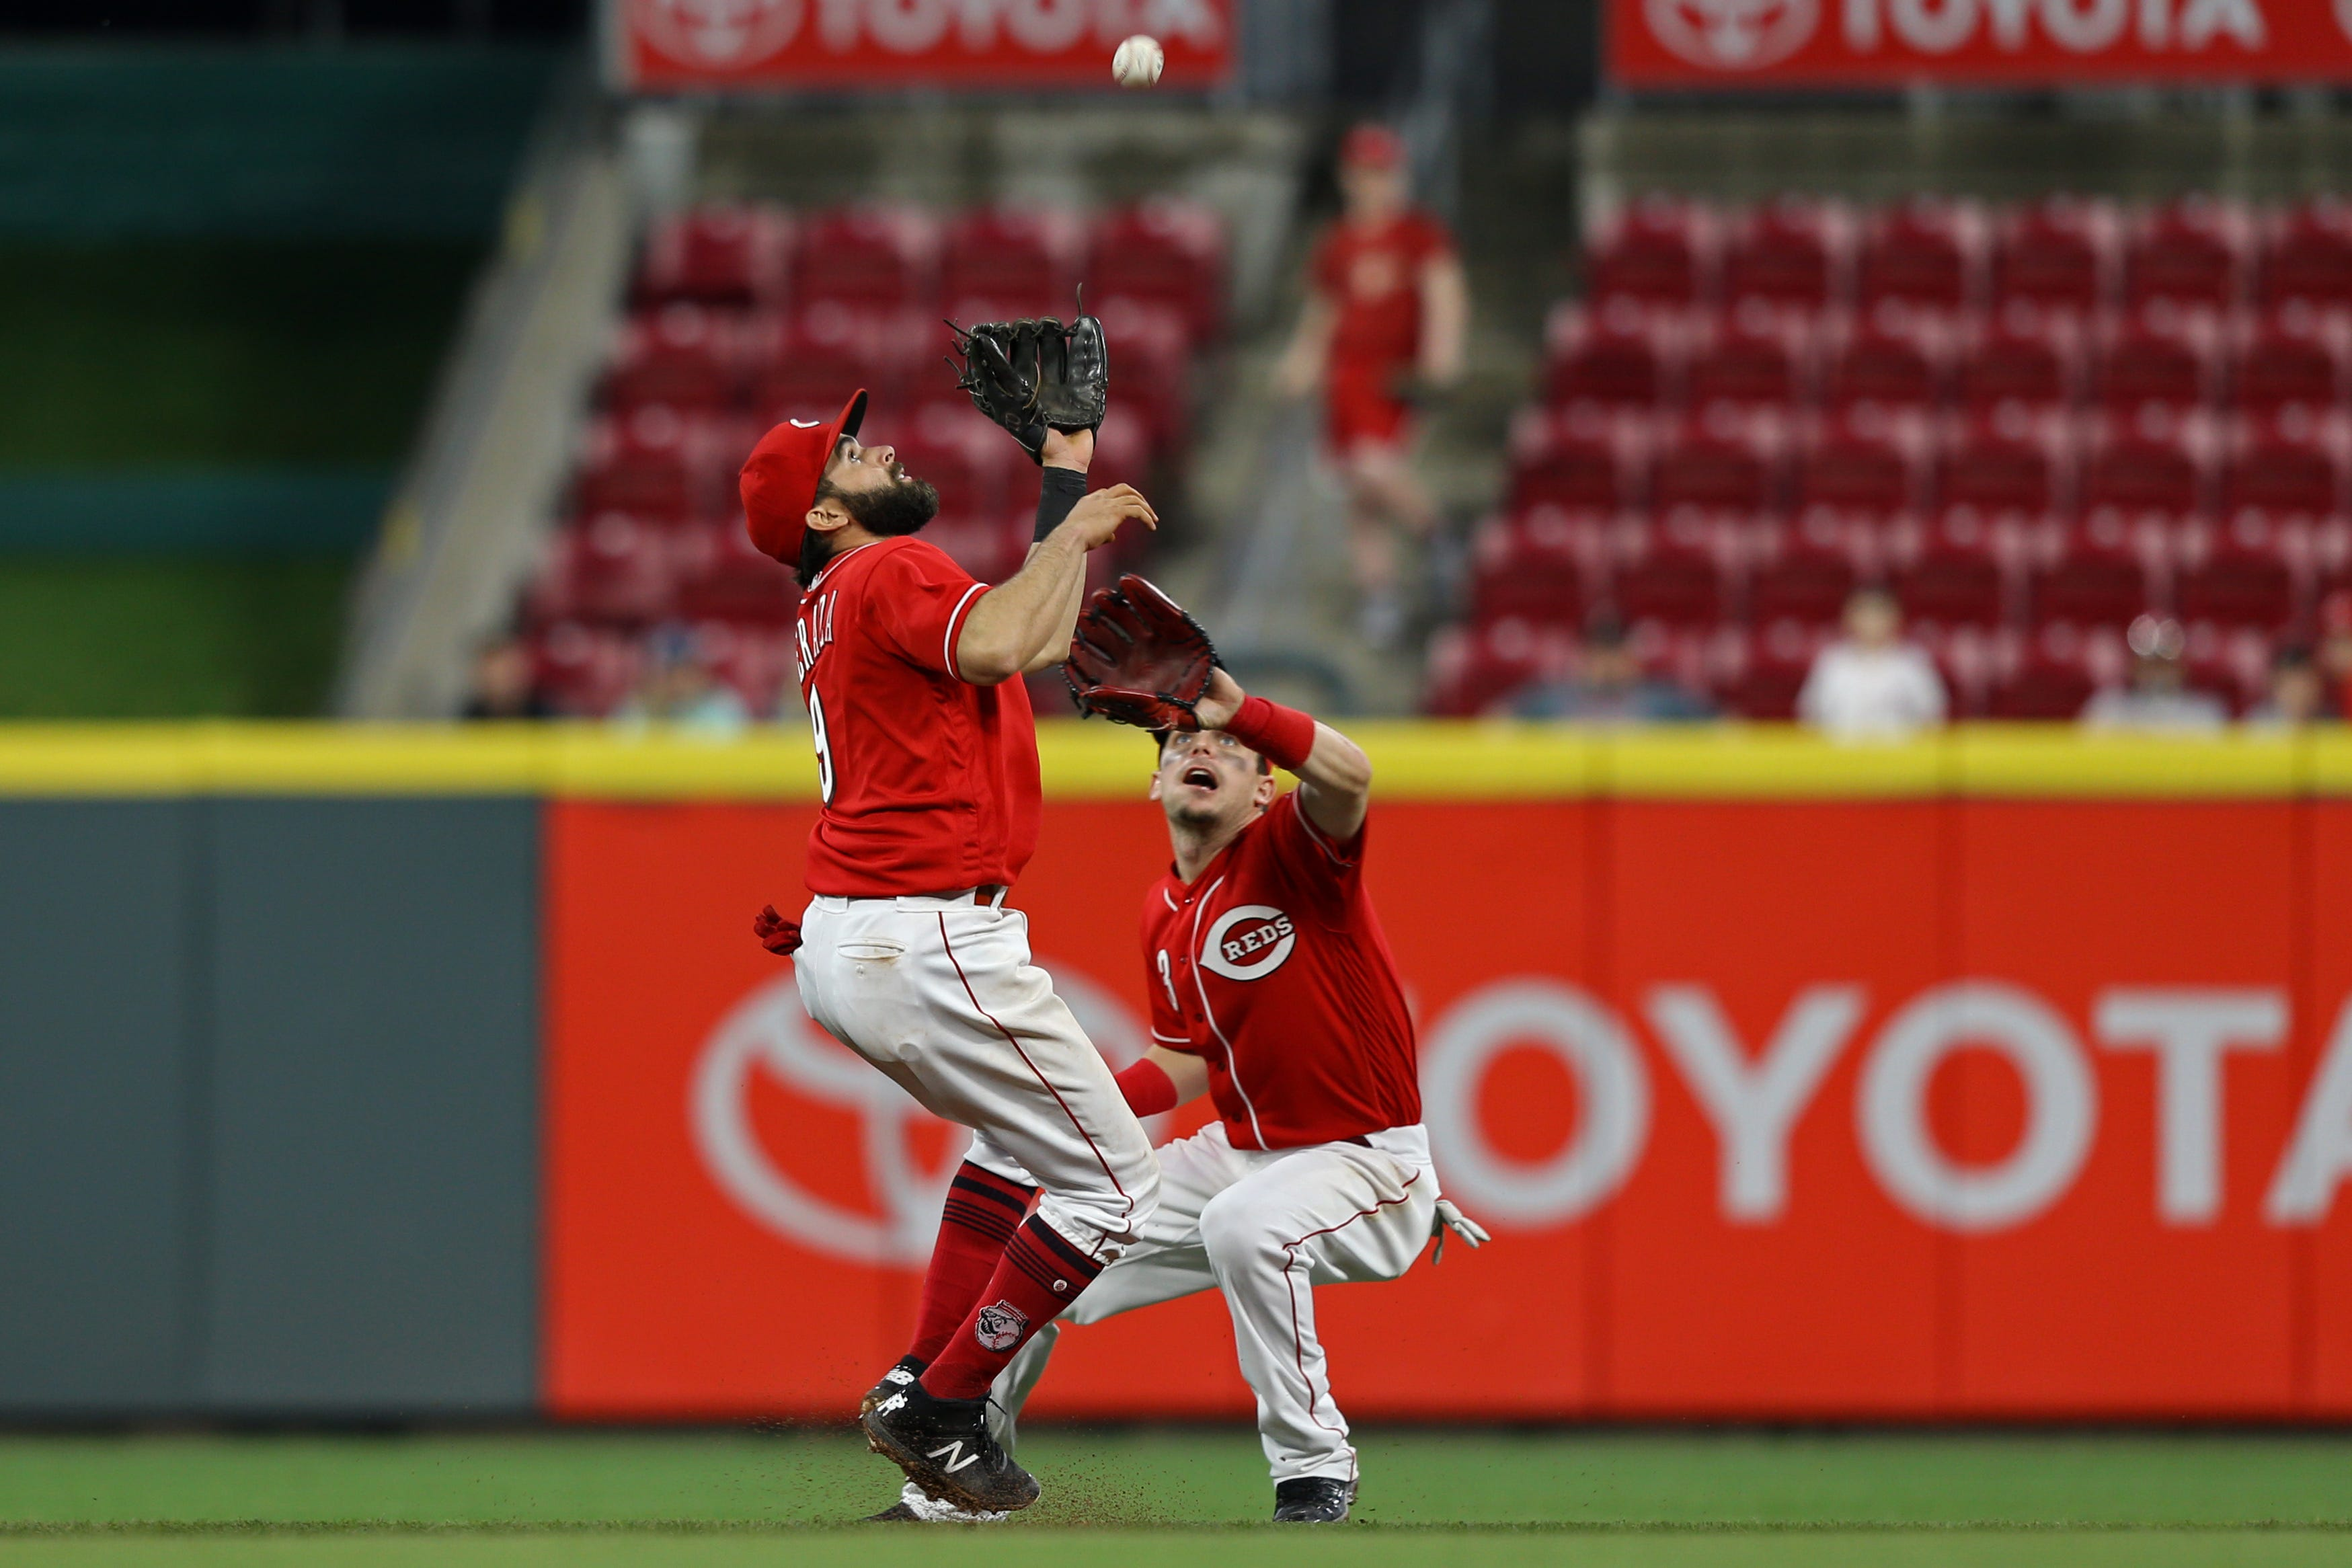 Cincinnati Reds second baseman Jose Peraza, left, and second baseman Scooter Gennett field a fly ball hit by Miami Marlins shortstop Yadiel Rivera during the ninth inning at Great American Ball Park.